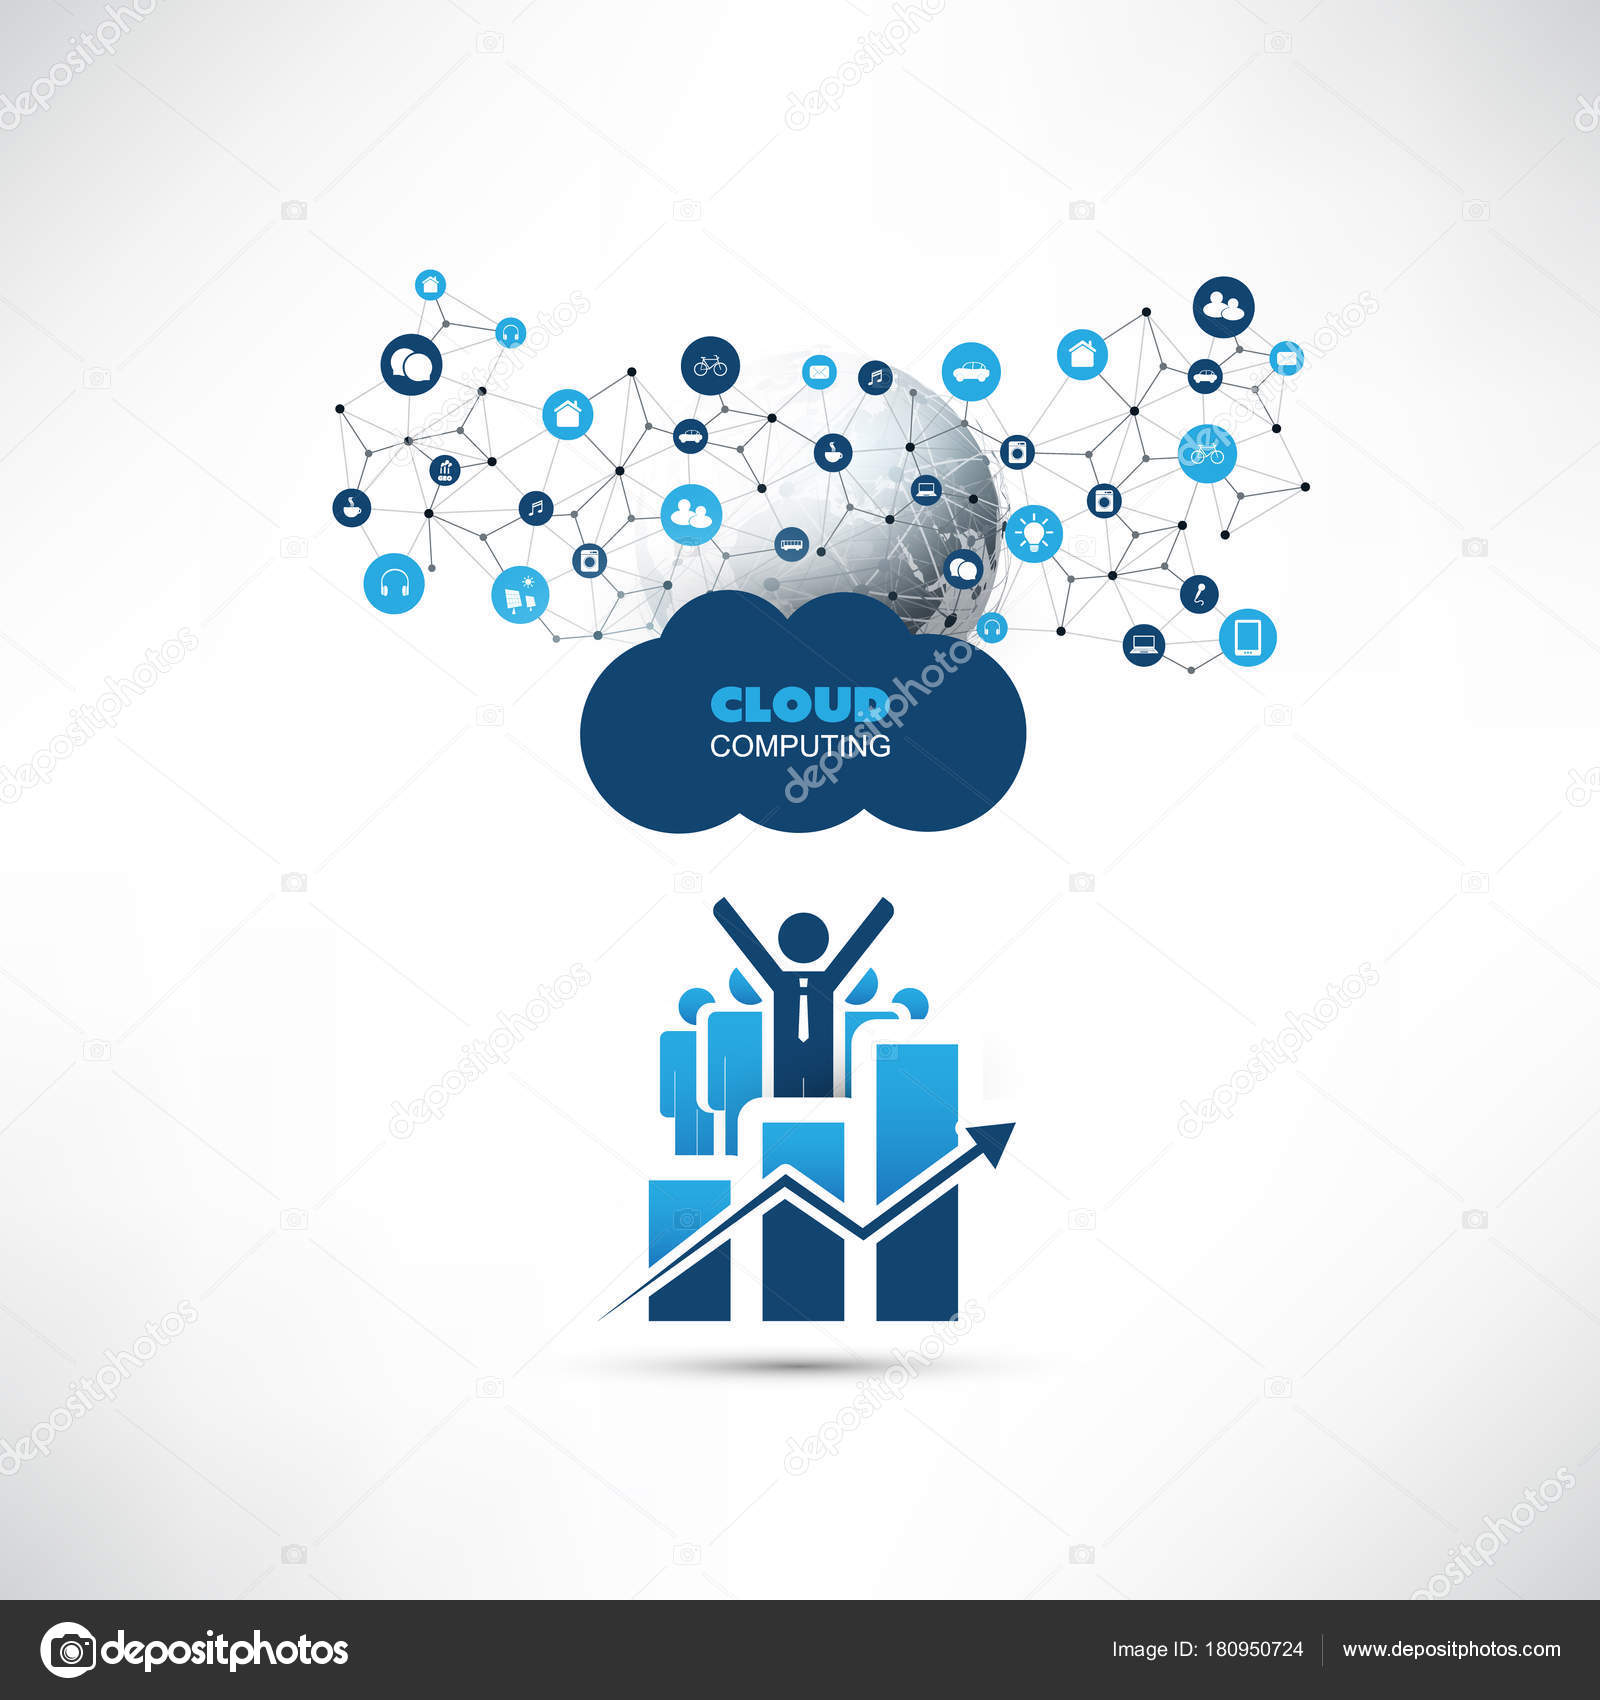 Cloud computing design concept with happy businessmen chart and abstract cloud computingnetwork connections online business management digital data exchange cooperation it or technology concept background or cover gumiabroncs Gallery